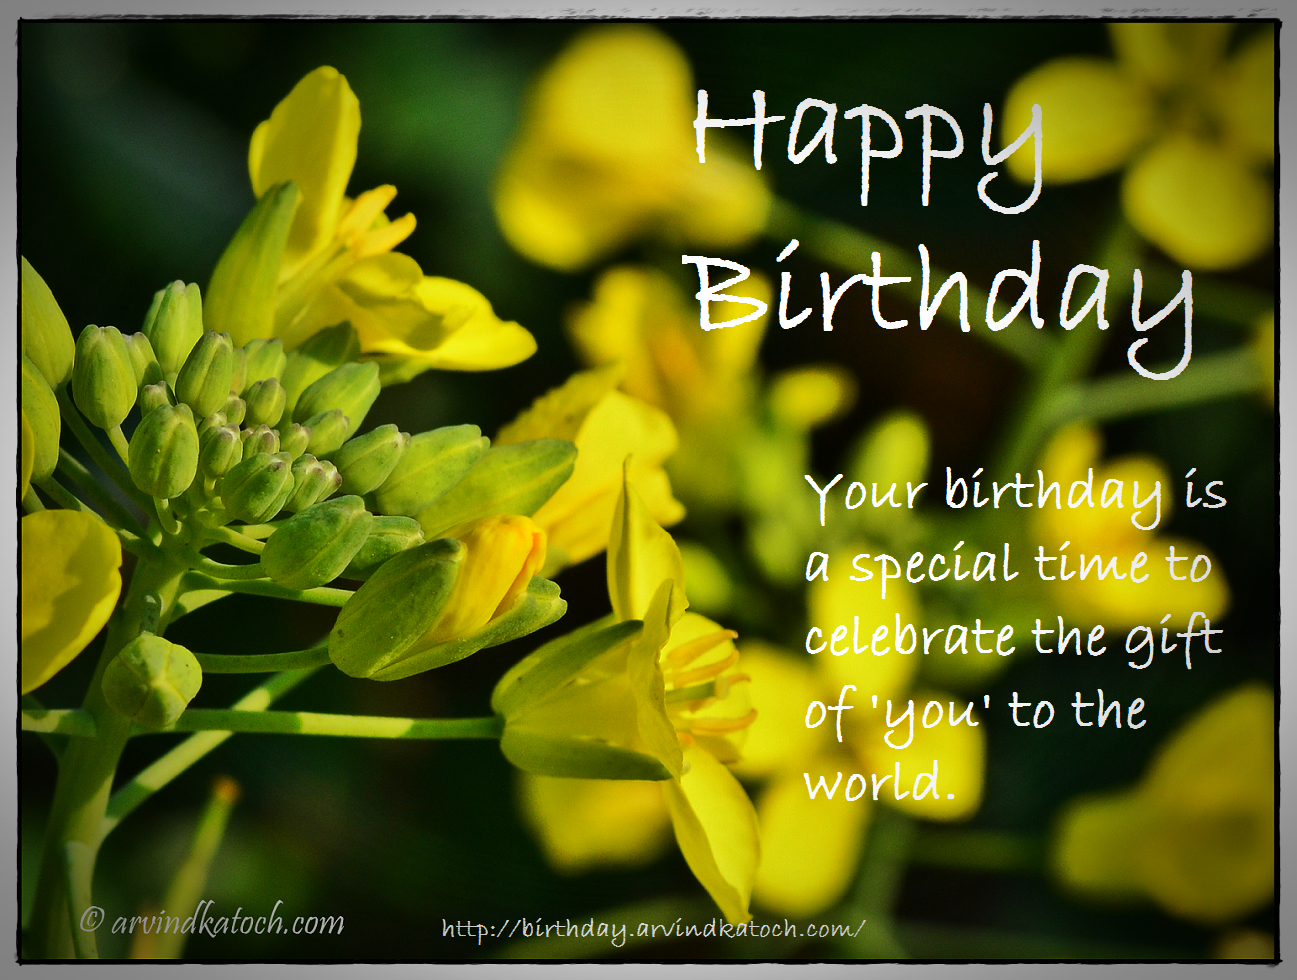 Birthday Card With Yellow Flowers Your Birthday Is A Special Time